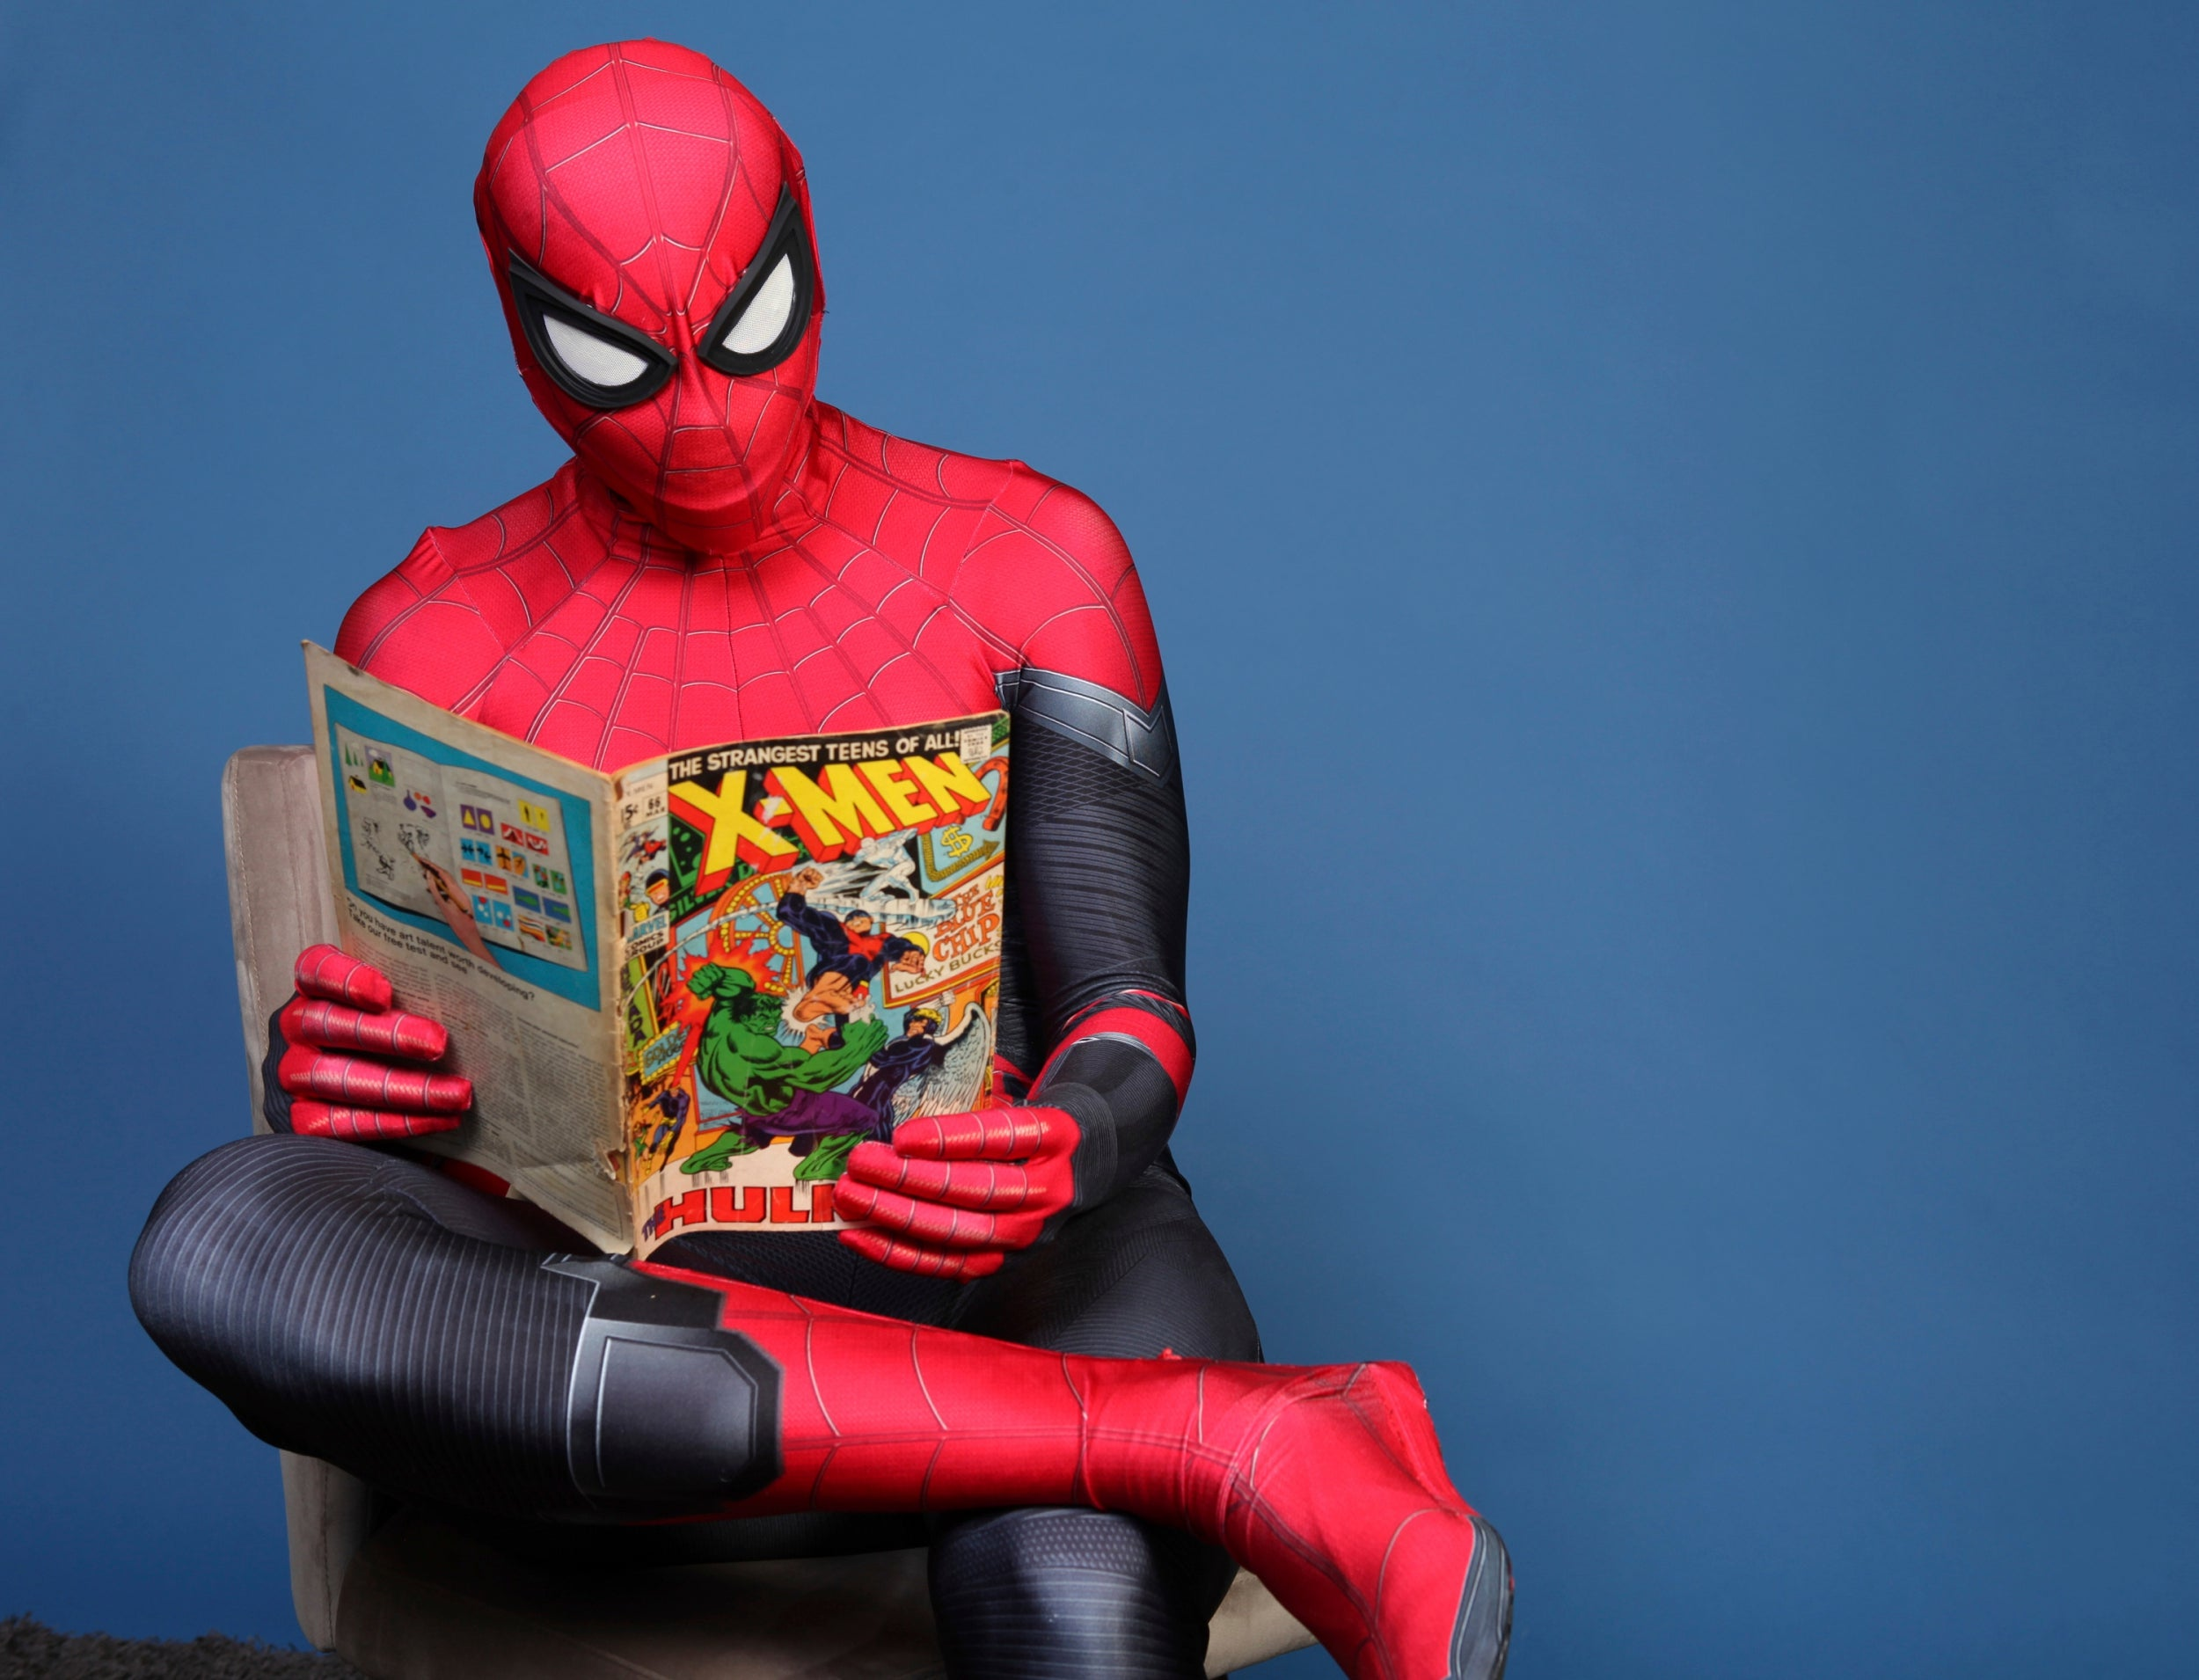 Mea Culpa: An initiation ceremony for Spider-Man fans